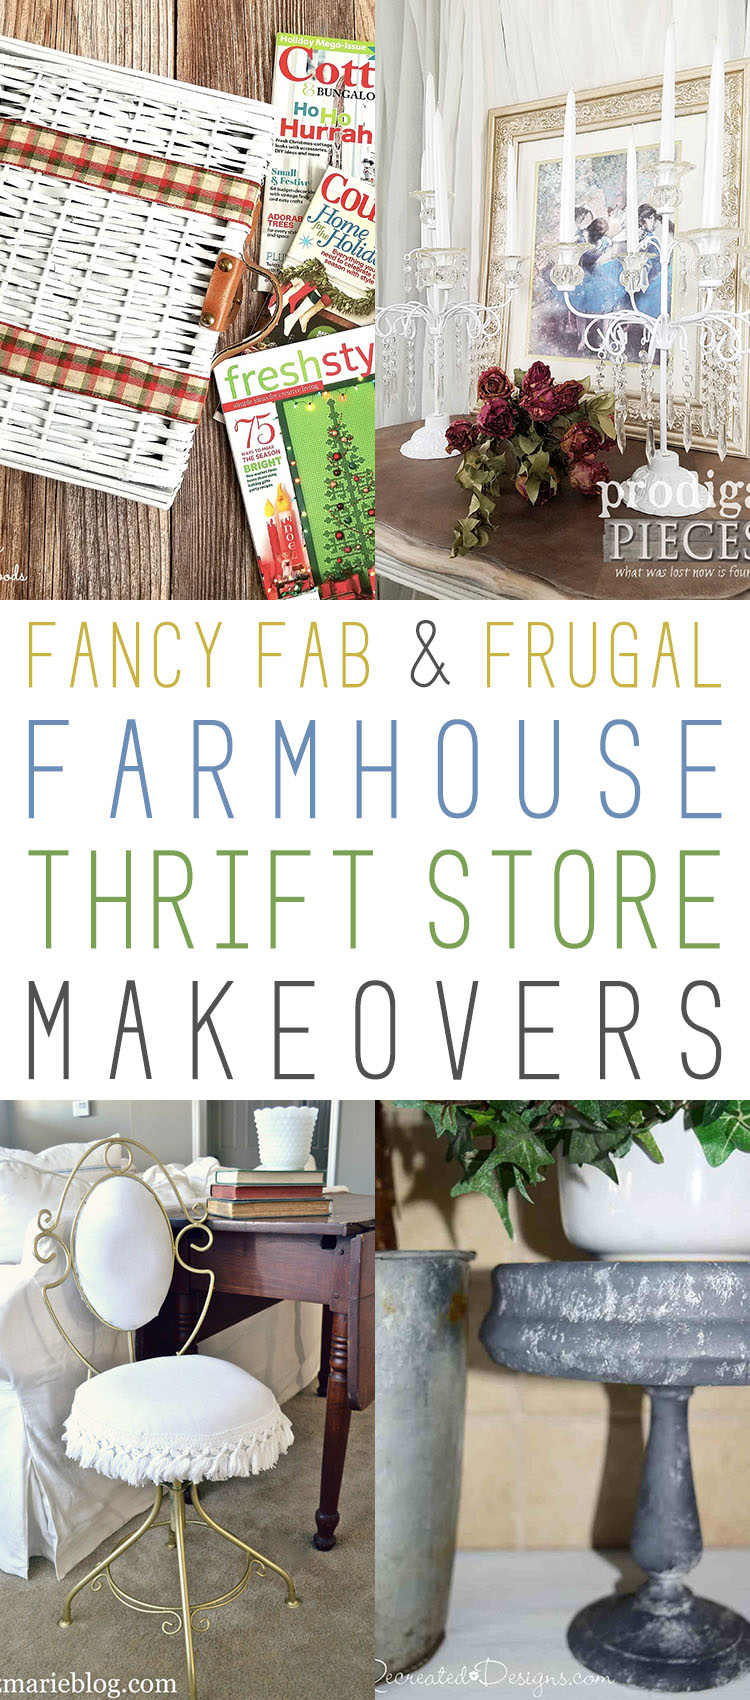 Fancy fab and frugal farmhouse thrift store makeovers for Fancy farmhouse